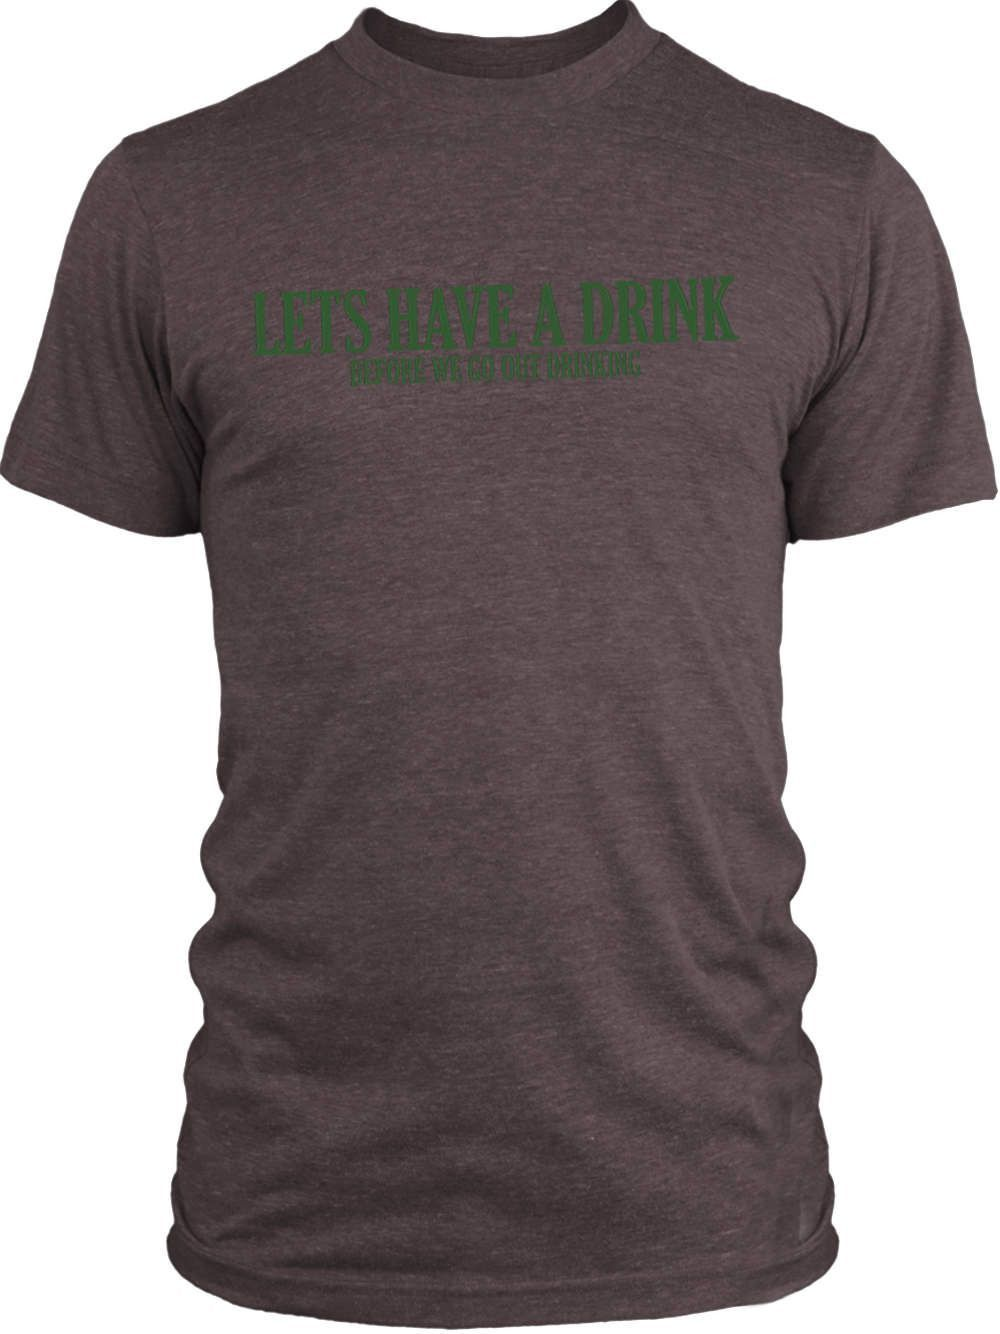 Big Texas Lets Have a Drink (Green) Vintage Tri-Blend T-Shirt